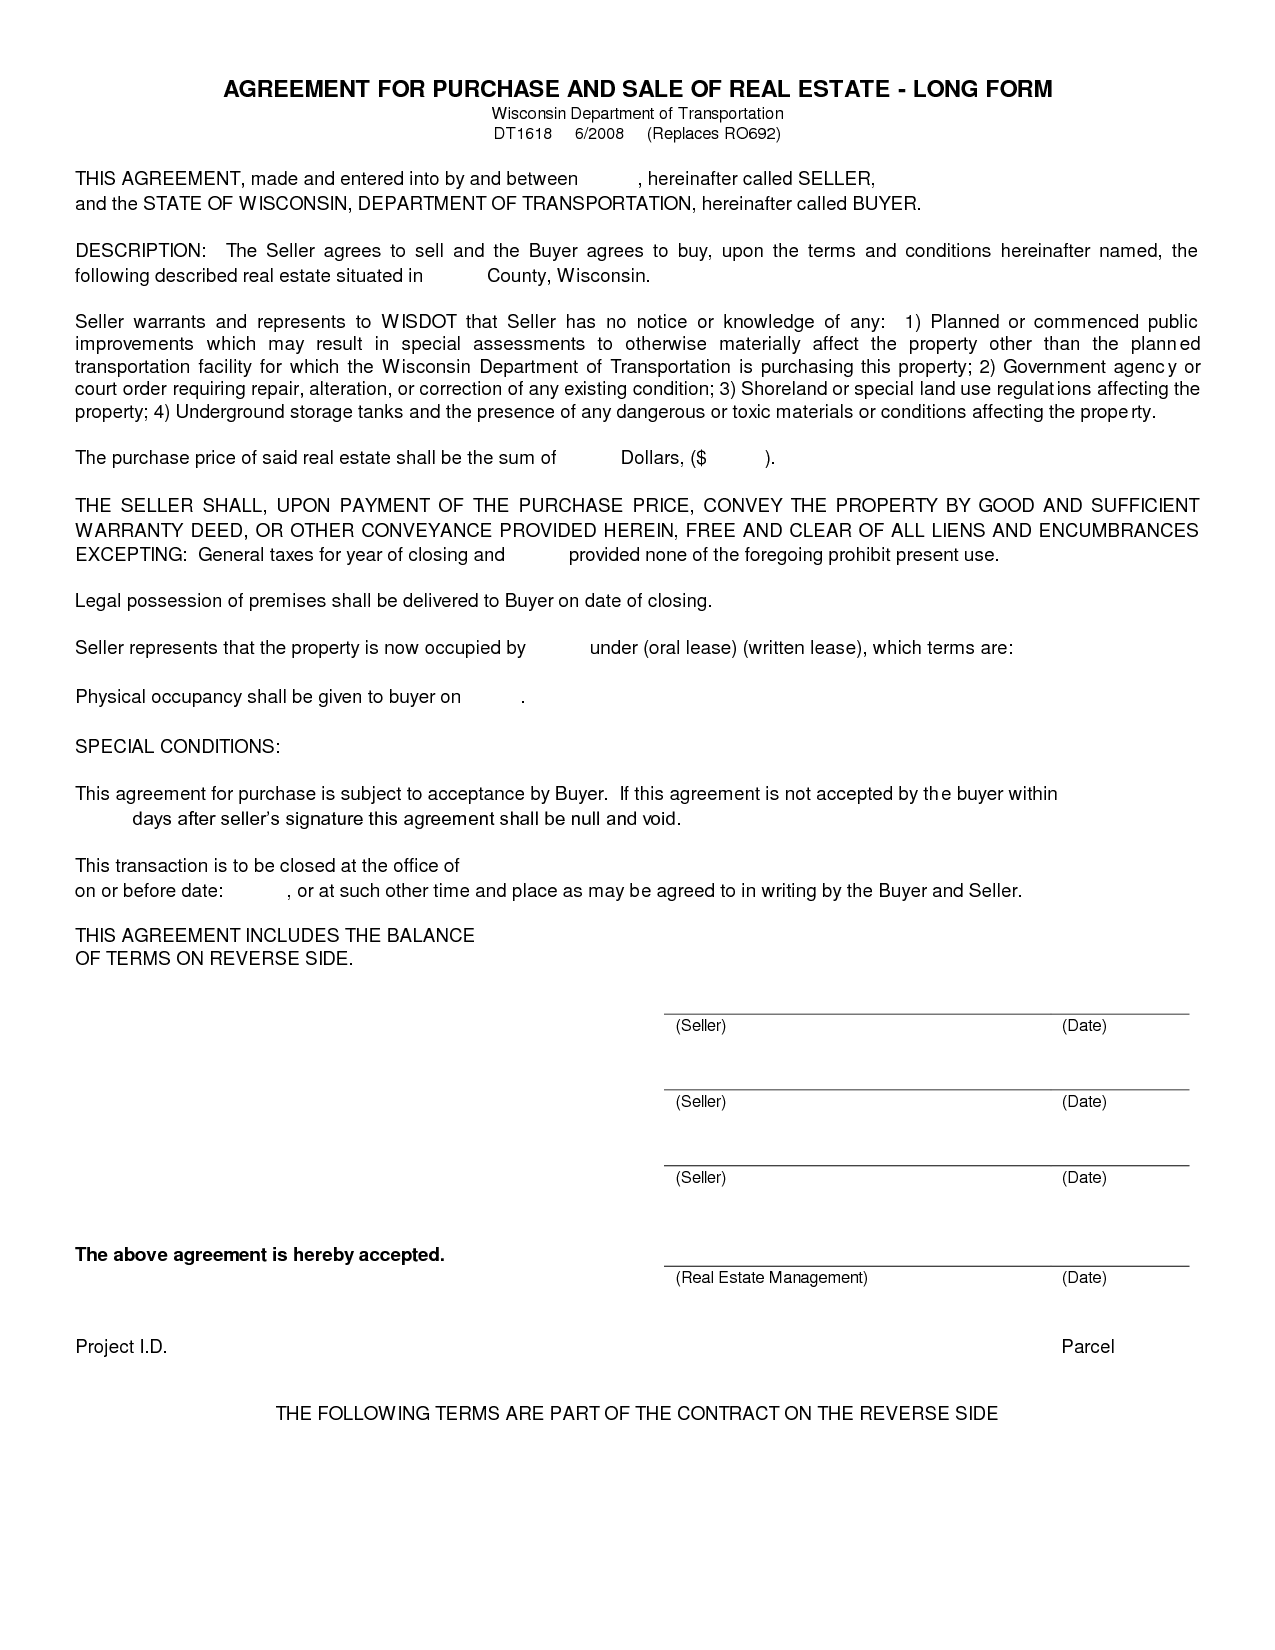 Lovely Free Blank Purchase Agreement Form Images   Agreement To Purchase Real  Estate Form Free Ideas Free Purchase Agreement Form